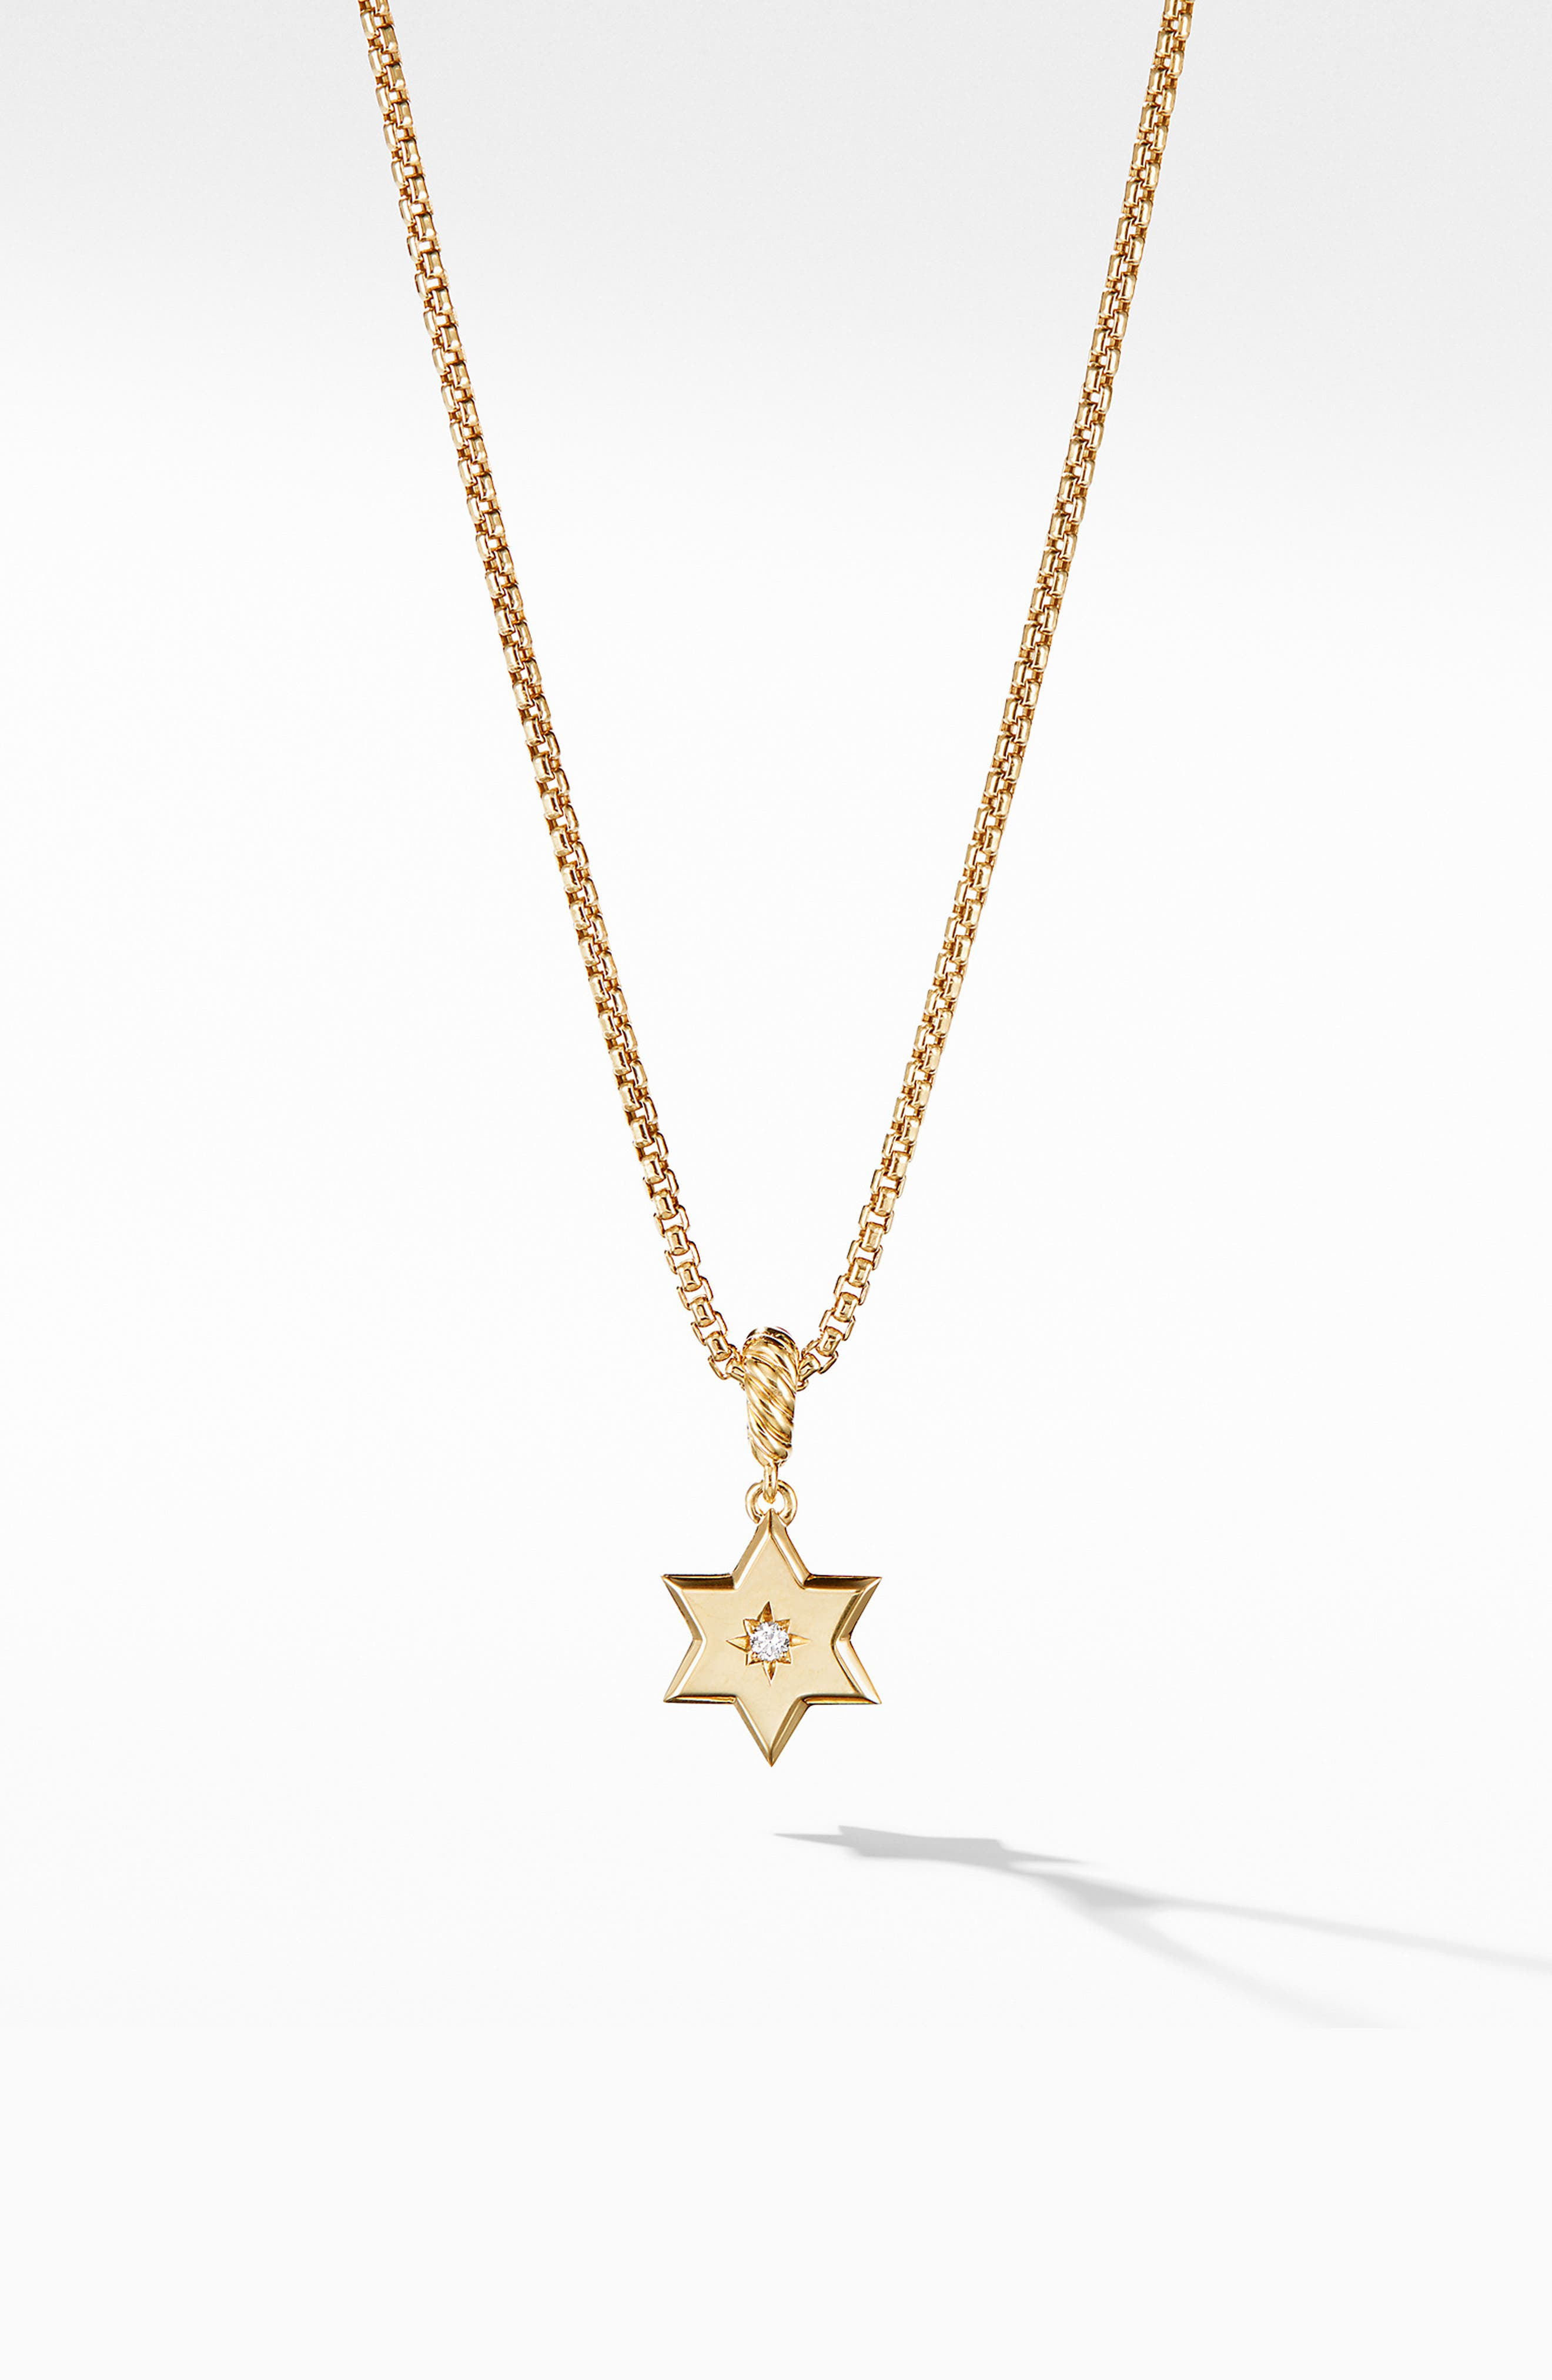 Star of David Pendant in 18K Yellow Gold with Diamonds,                         Main,                         color, YELLOW GOLD/ DIAMOND